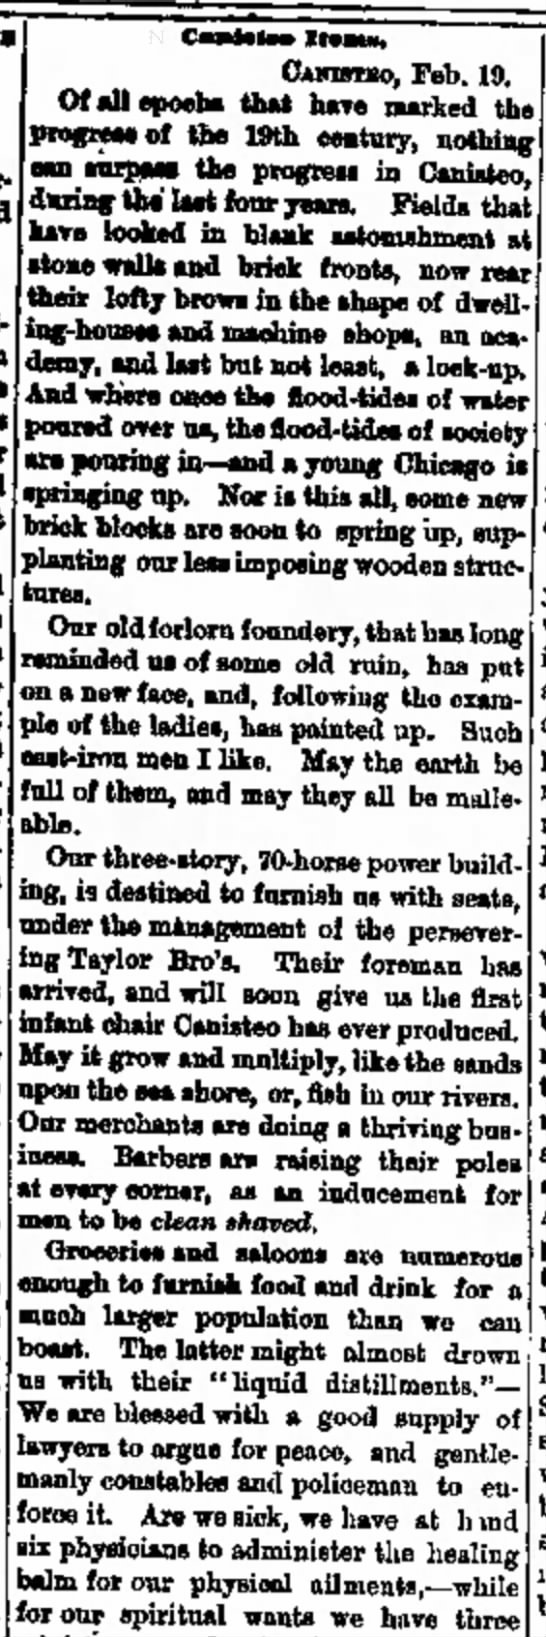 Hornellsville Weekly TribuneHornellsville, NYFriday, February 27, 1874 - wMbrU- in the lower and win in mn gath idl»,...